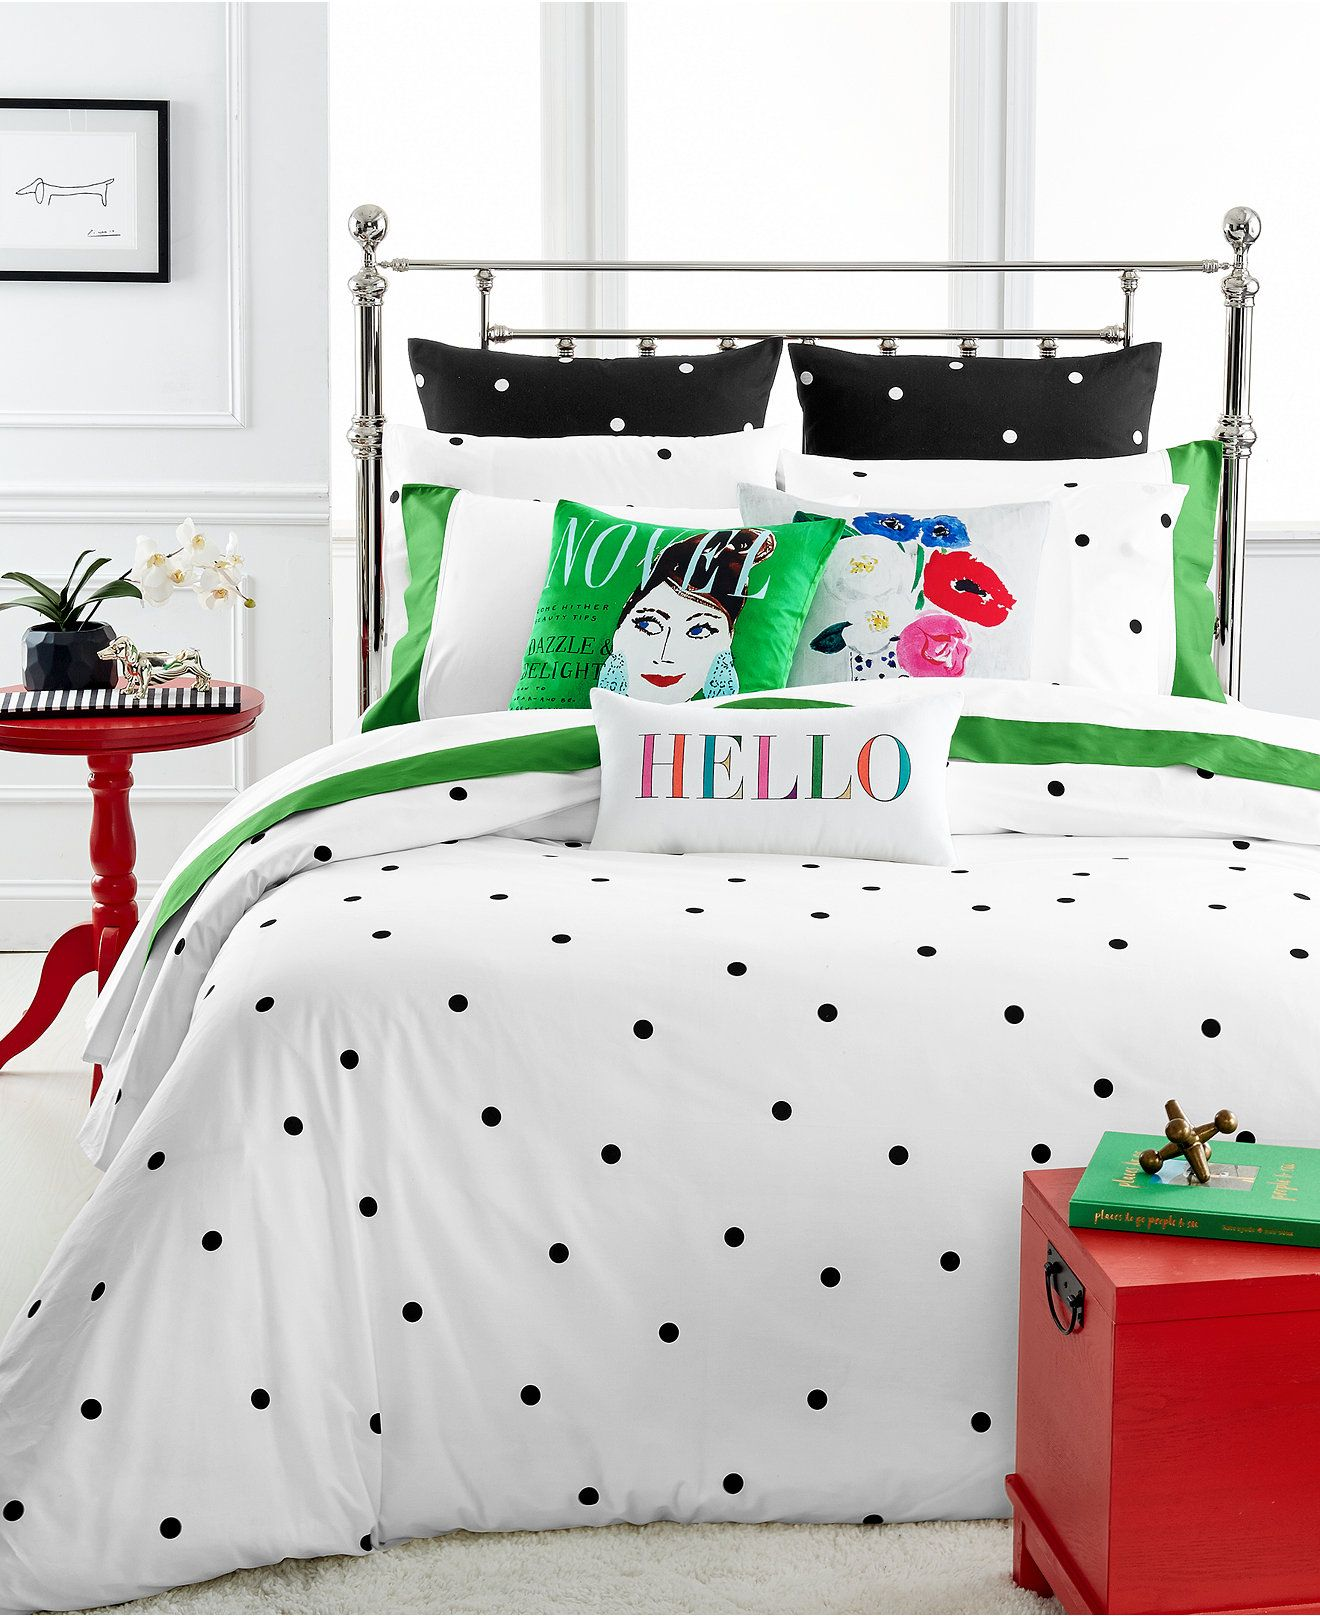 kate spade new york Deco Dot White forter and Duvet Cover Sets